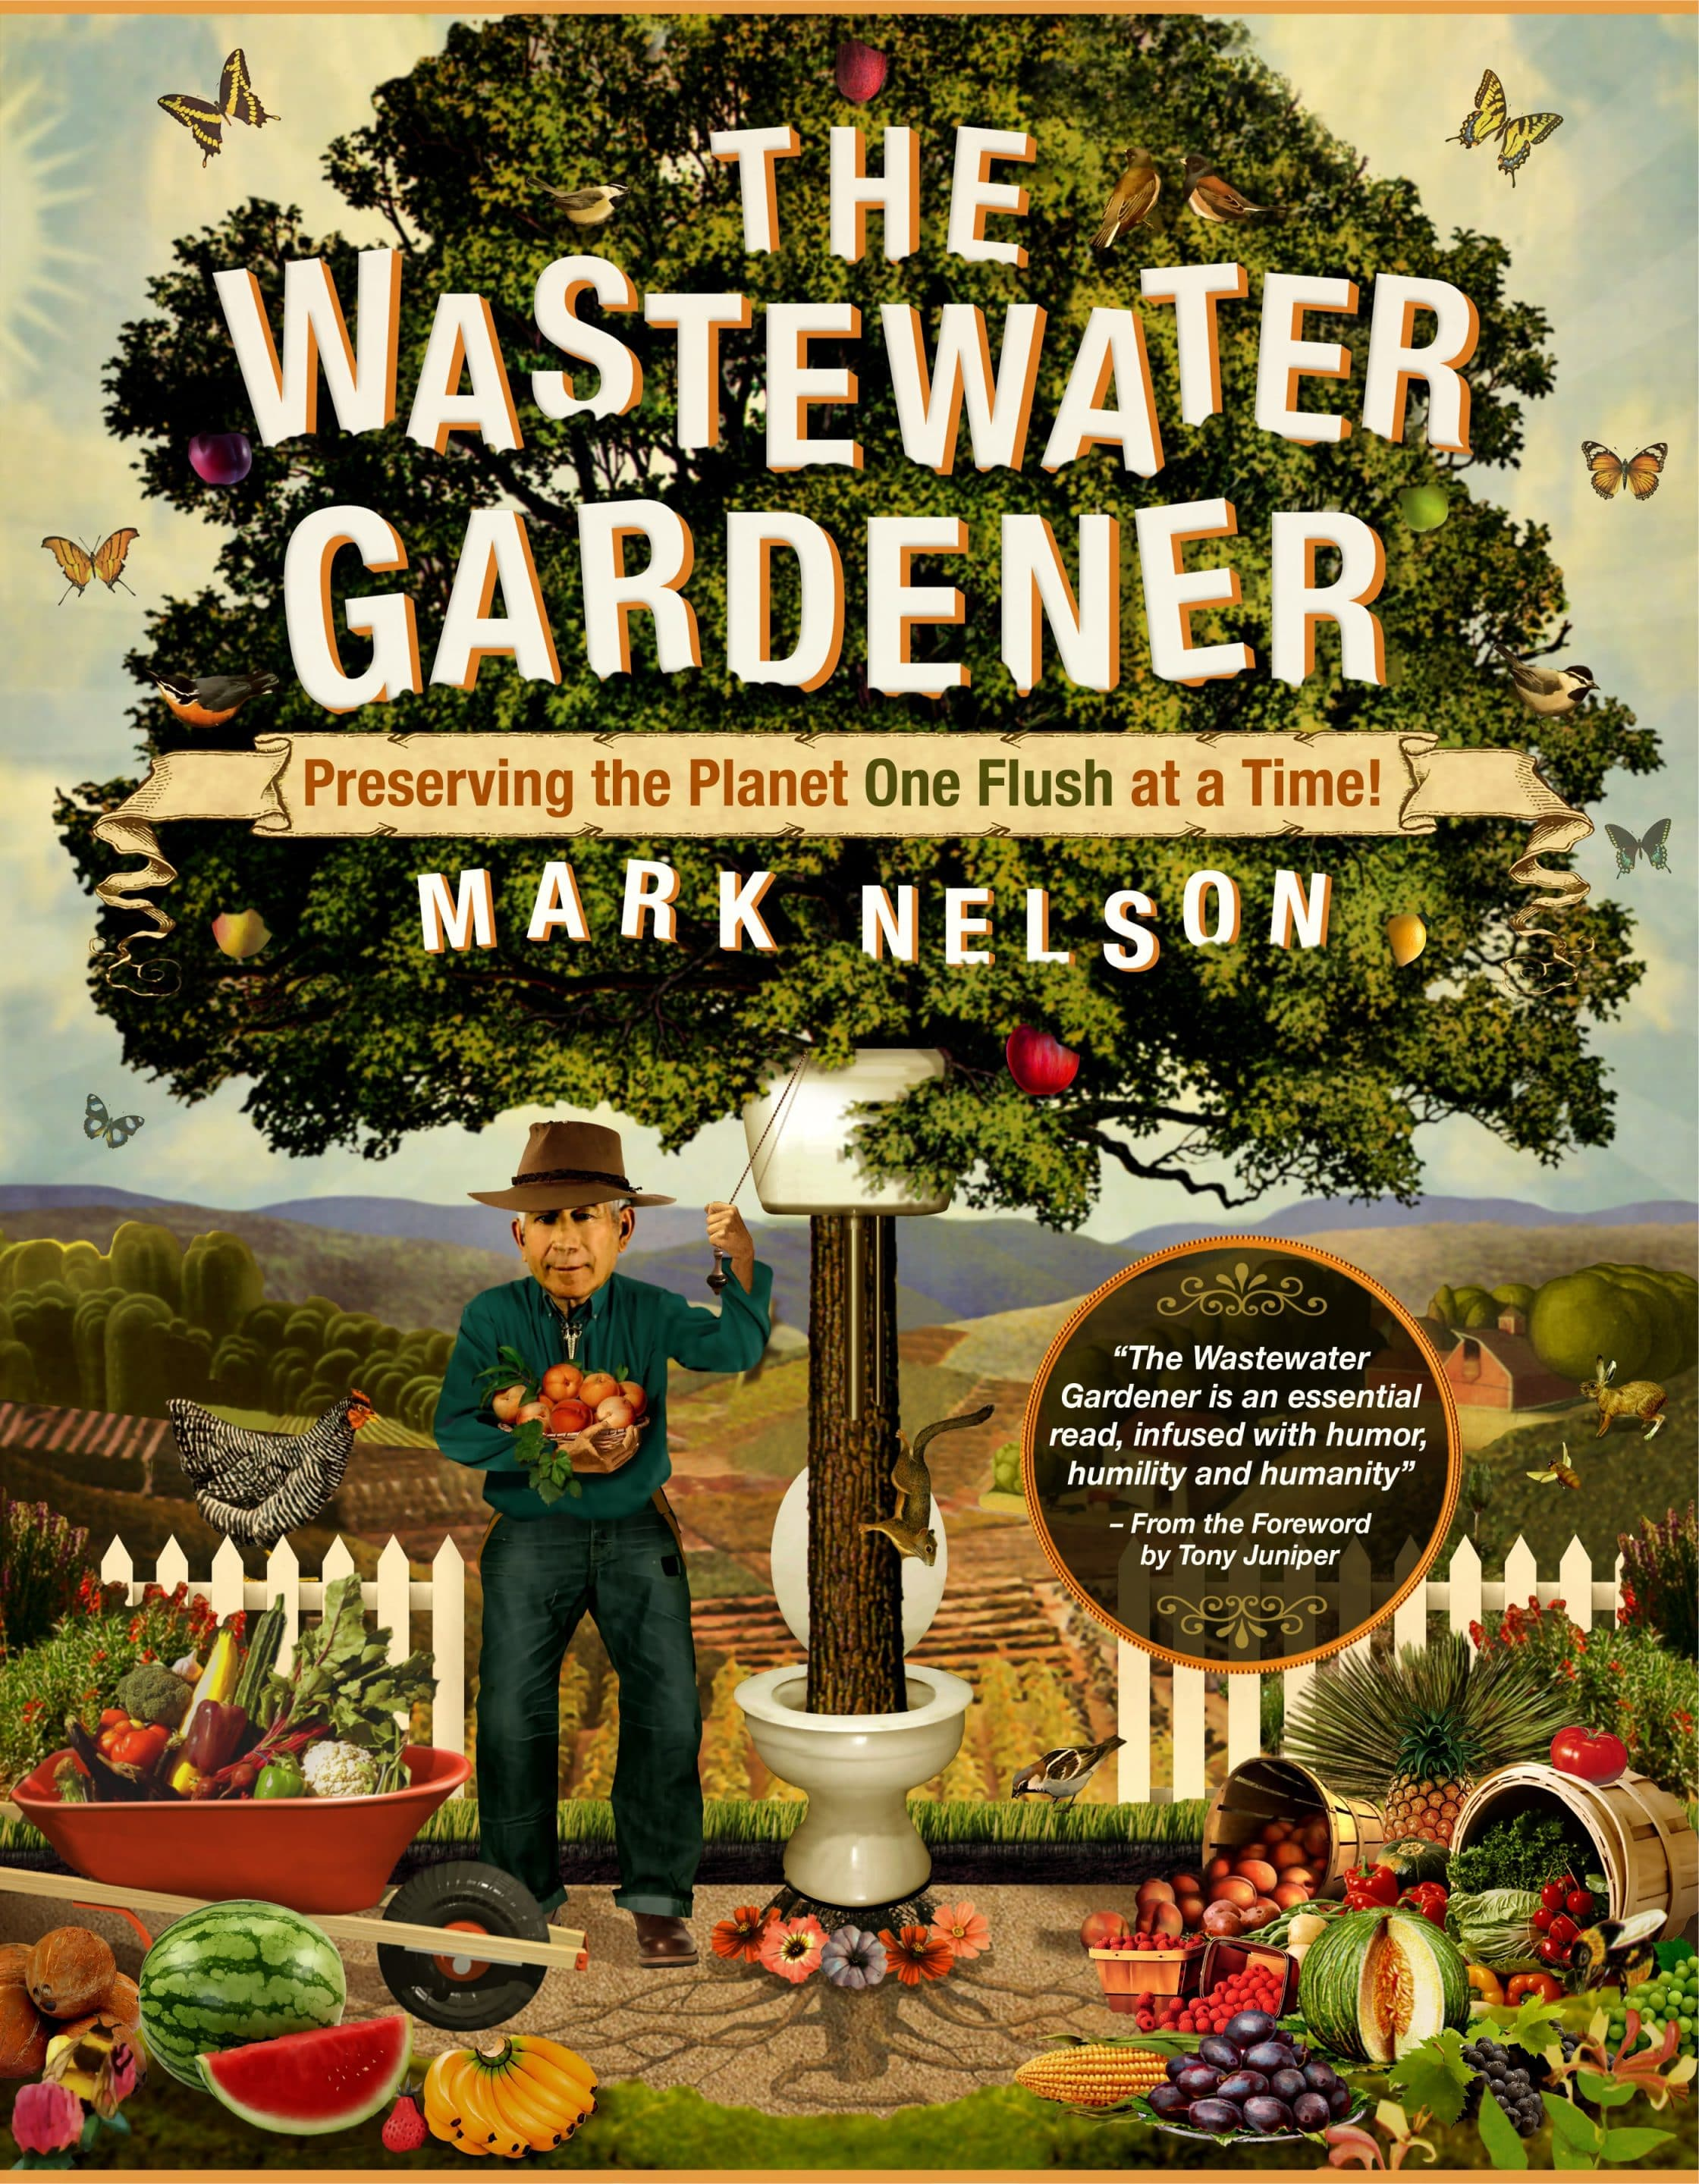 The Wastewater Gardener: Preserving the Planet One Flush at a Time